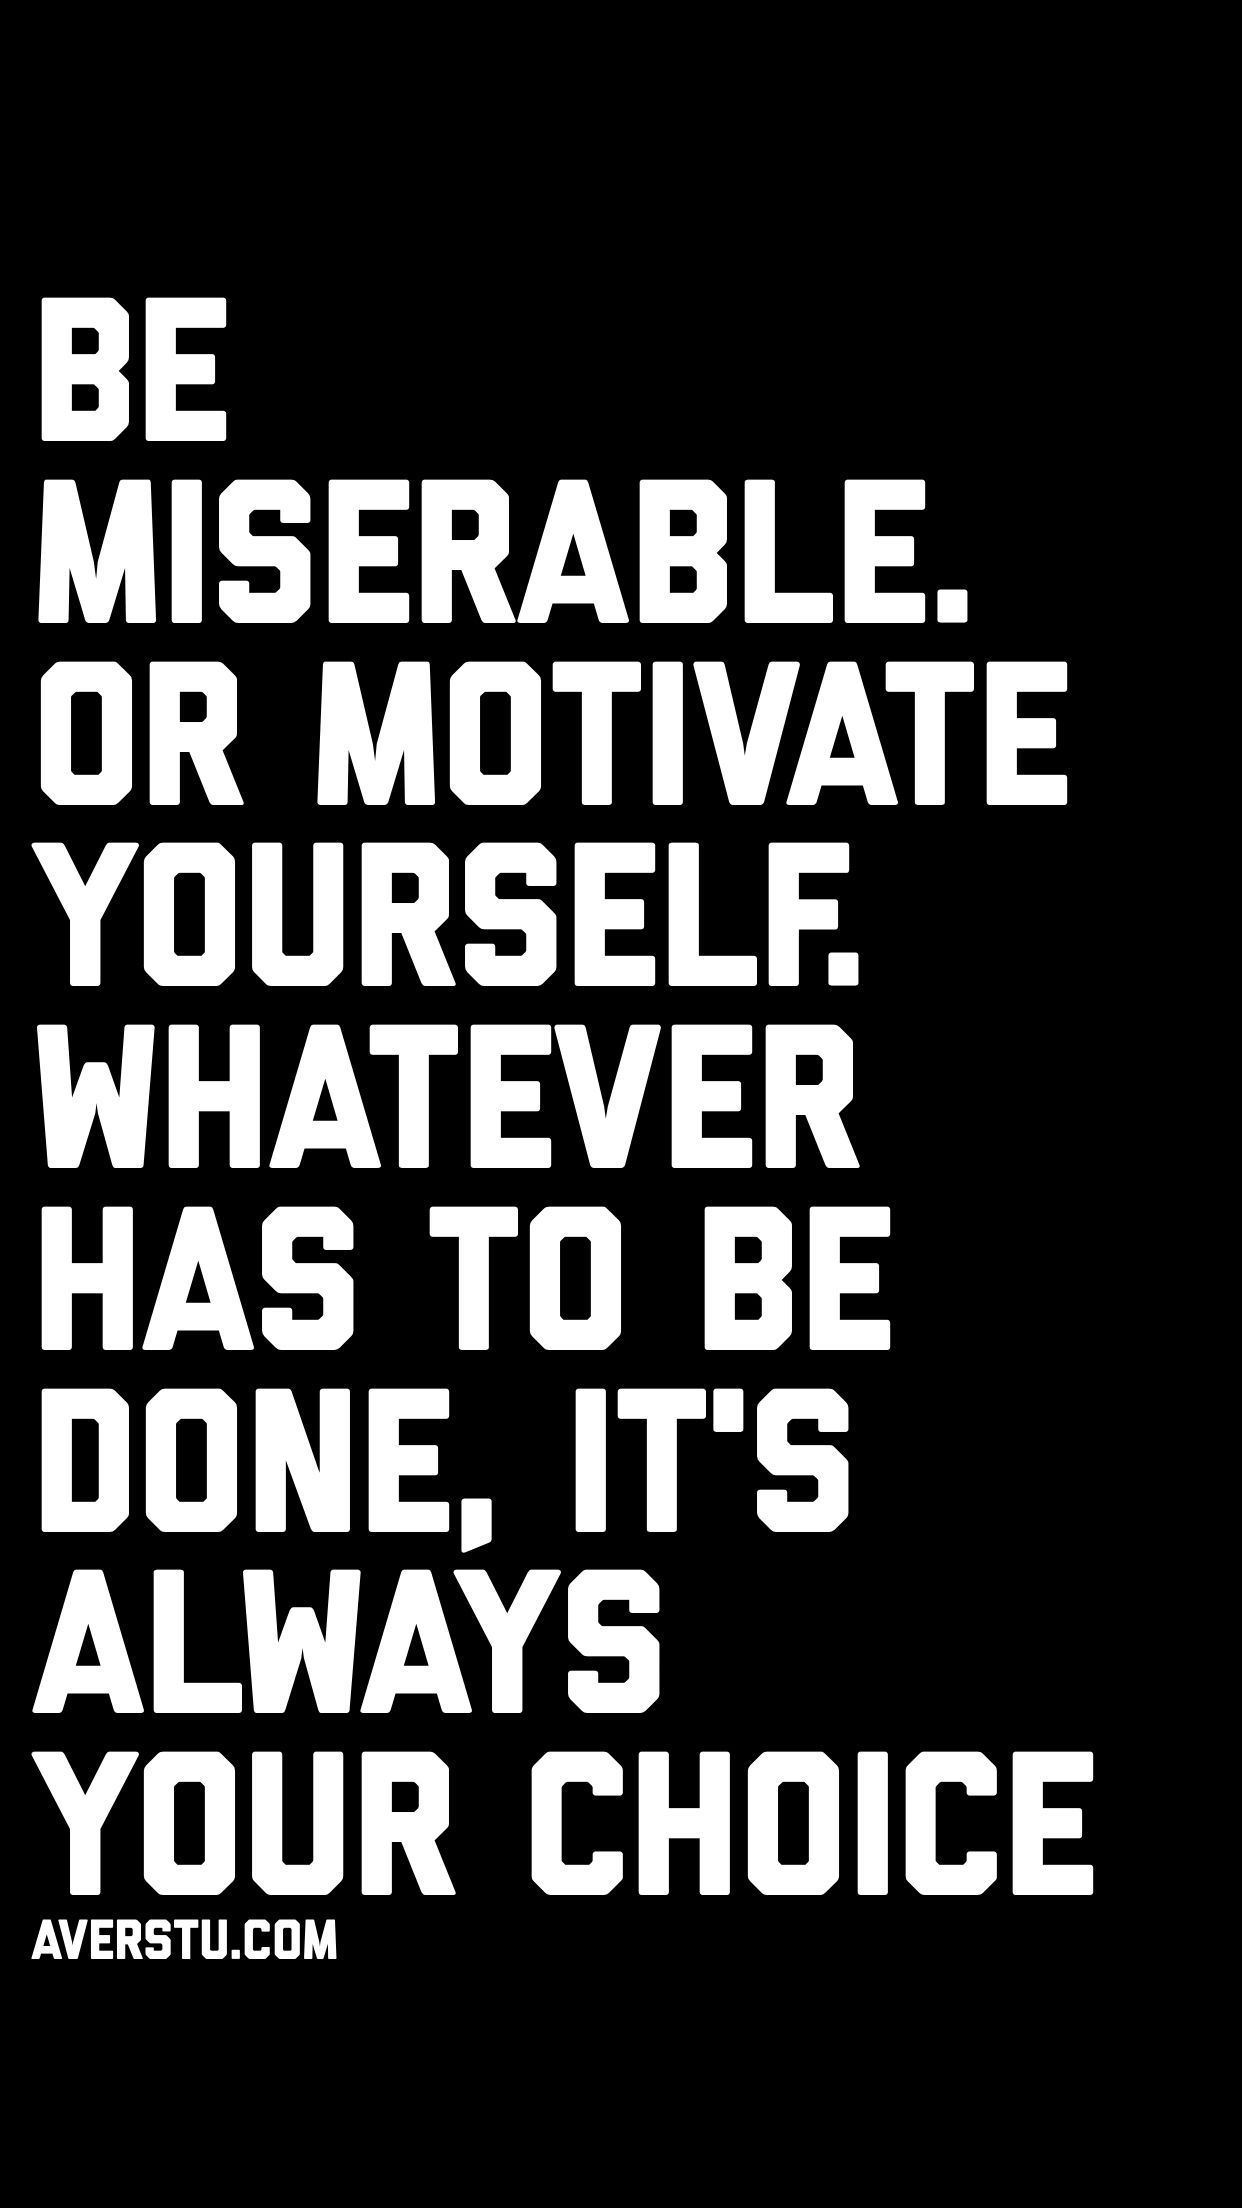 Be Miserable Or Motivate Yourself Whatever Has To Be Done It S Always Your Choice Motivationallovequotes Done Quotes Motivational Quotes Life Quotes